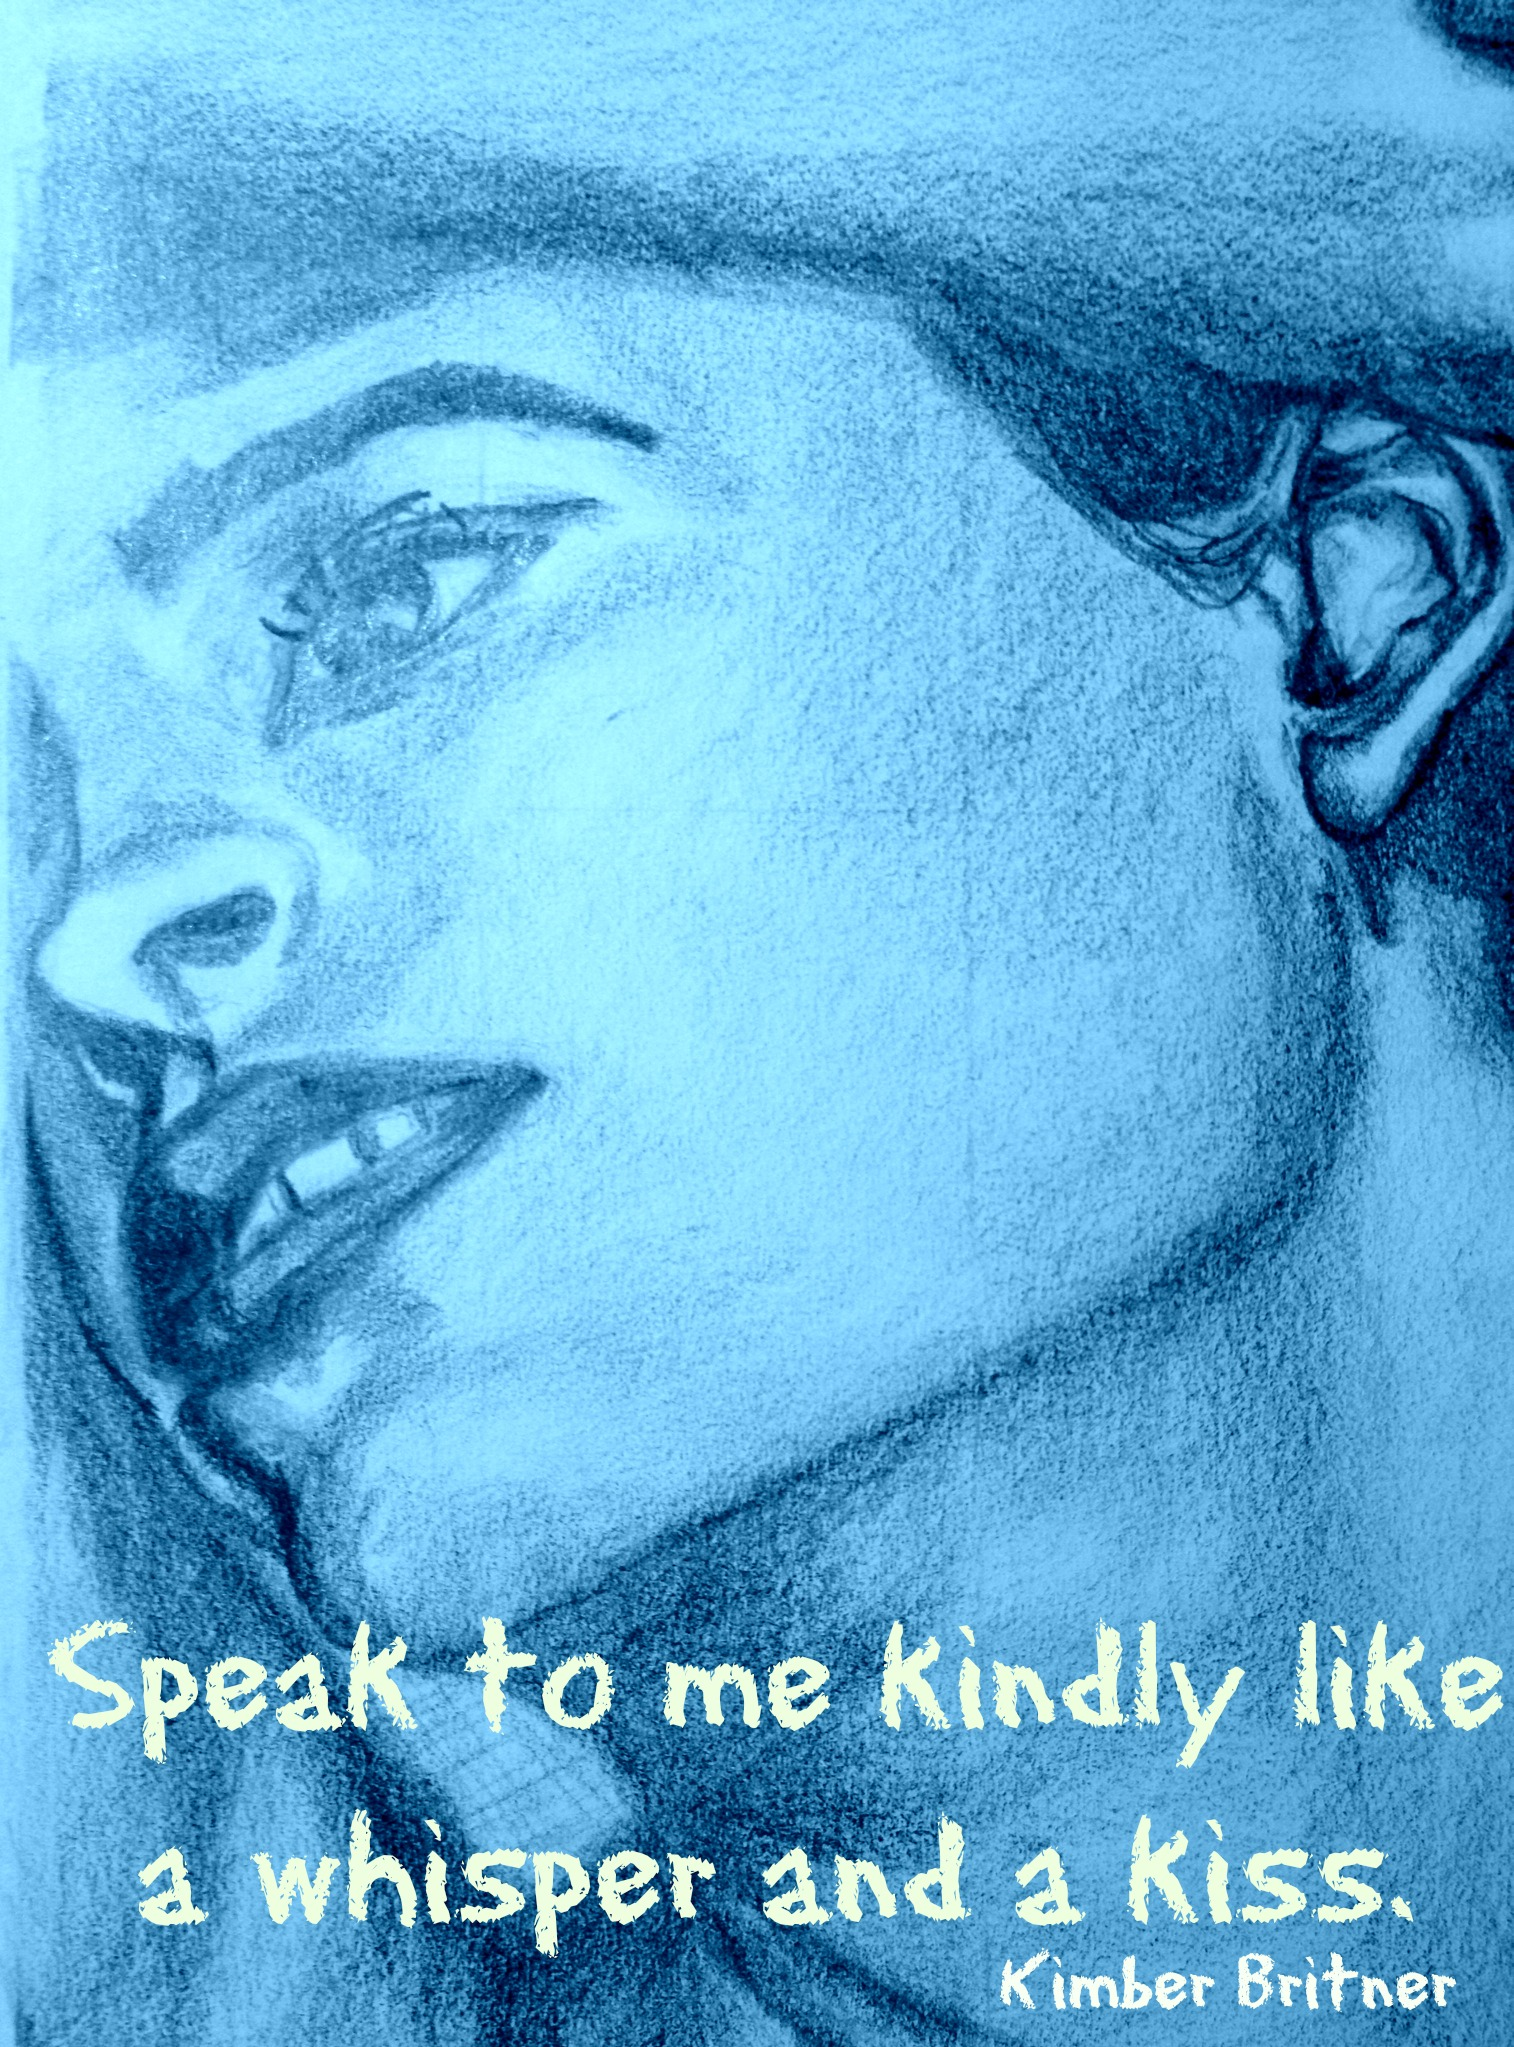 Speak to me kindly